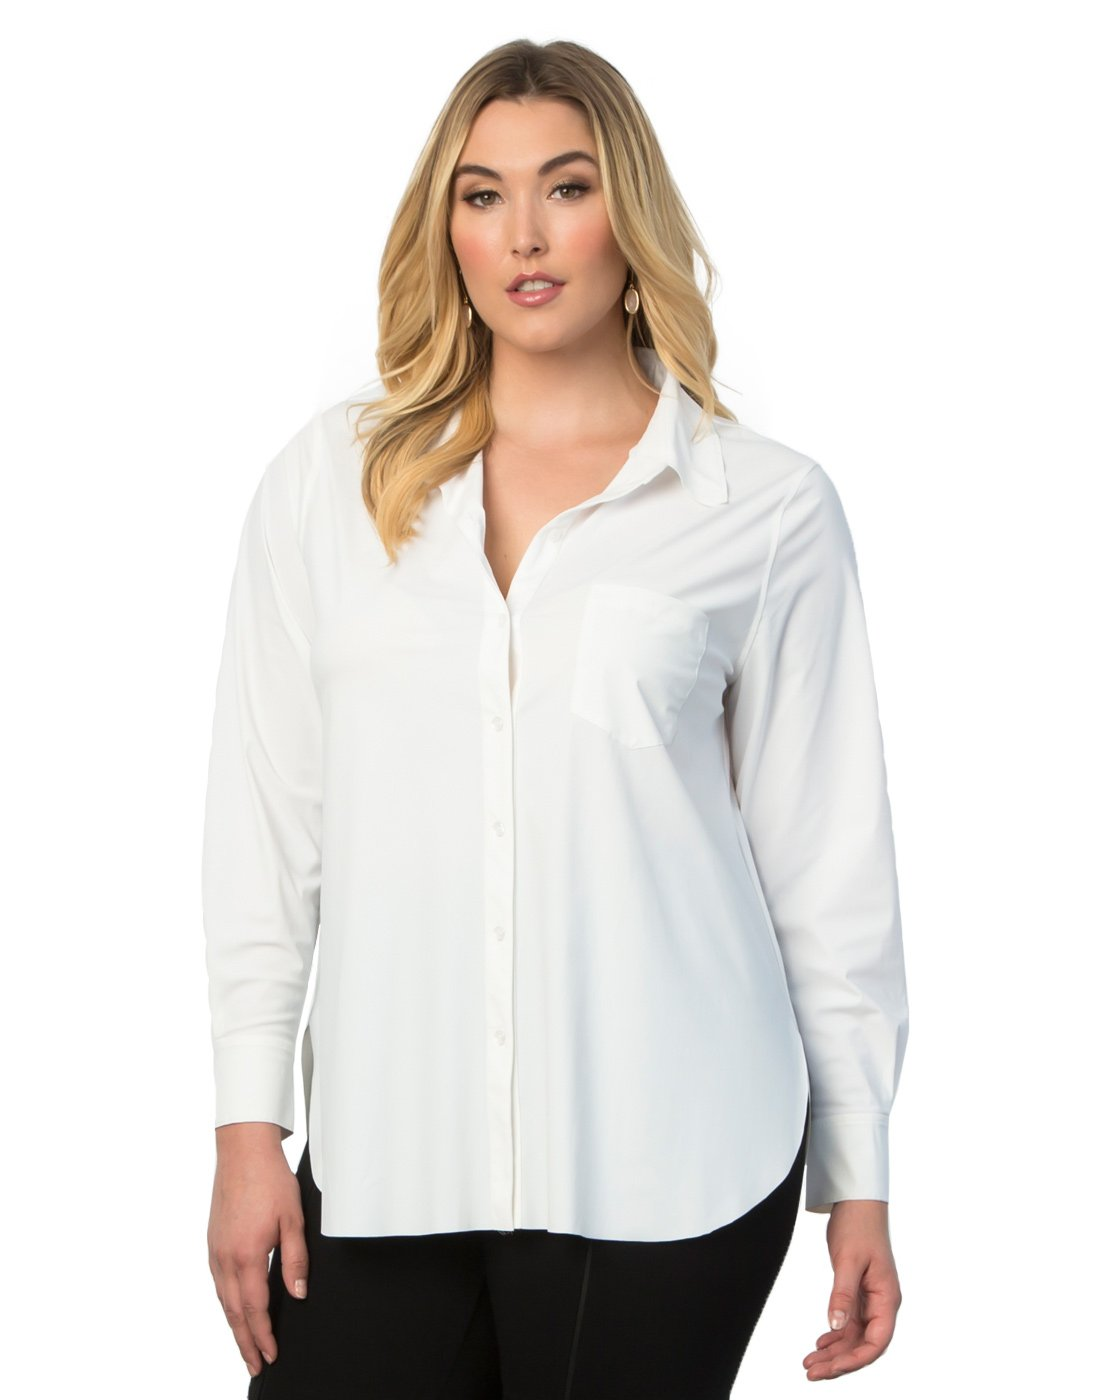 Kiyonna Clothing Women's Plus Size Schiffer Button Down by Lyssé 2X White by Kiyonna Clothing